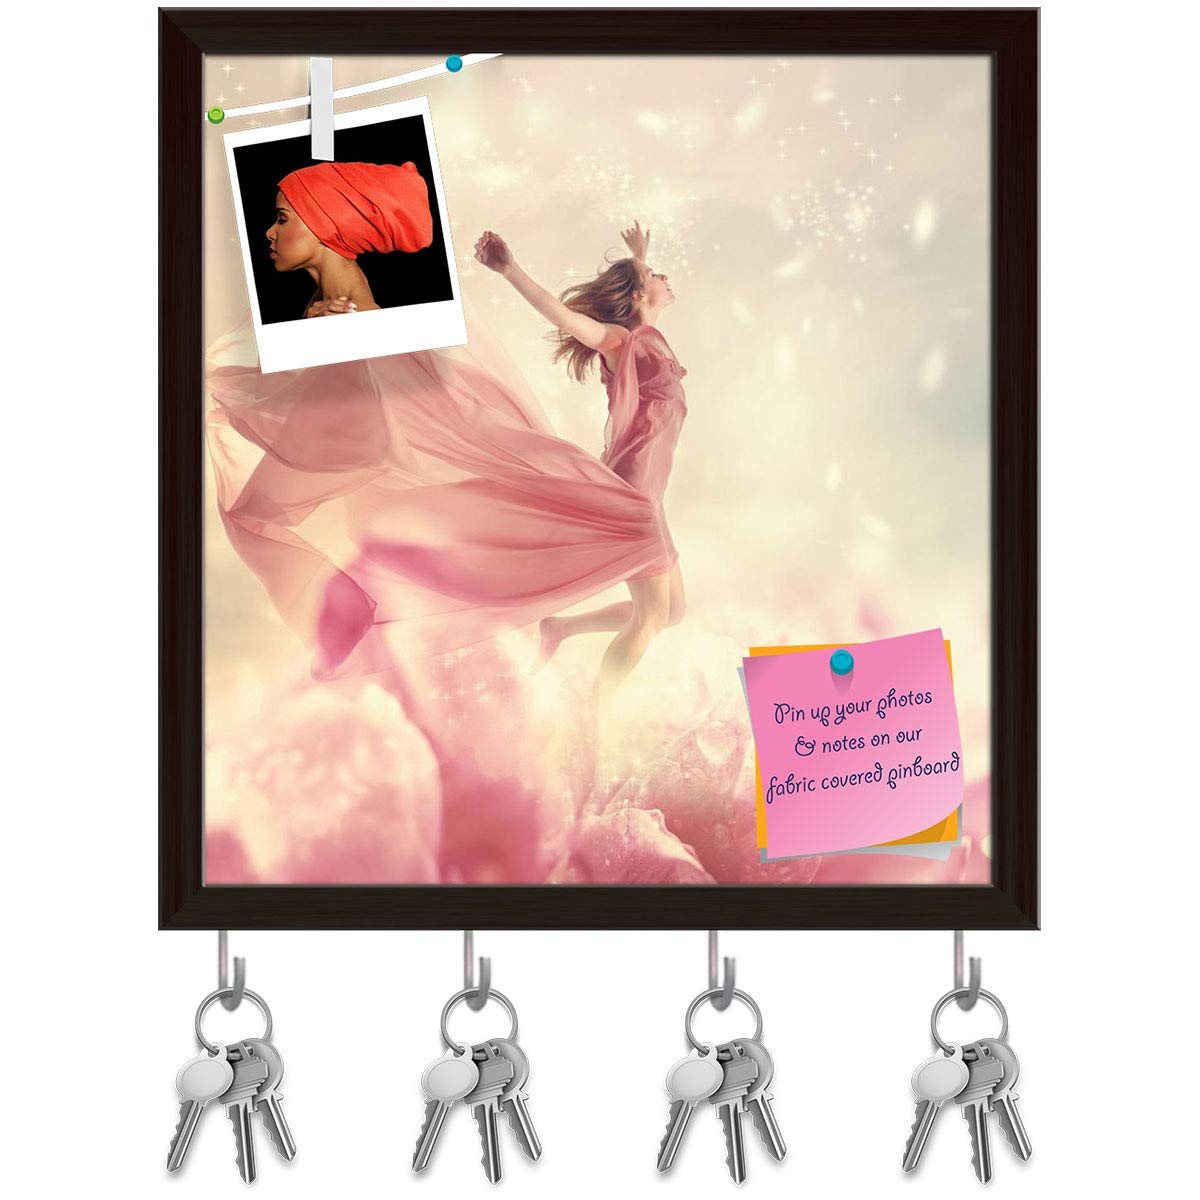 Dark Brown Frame 8inch x 8.4inch (20.3cms x 21.3cms) Artzfolio Woman Jumping On A Giant Flower Key Holder Hooks   Notice Pin Board   White Frame 16 X 16.8Inch